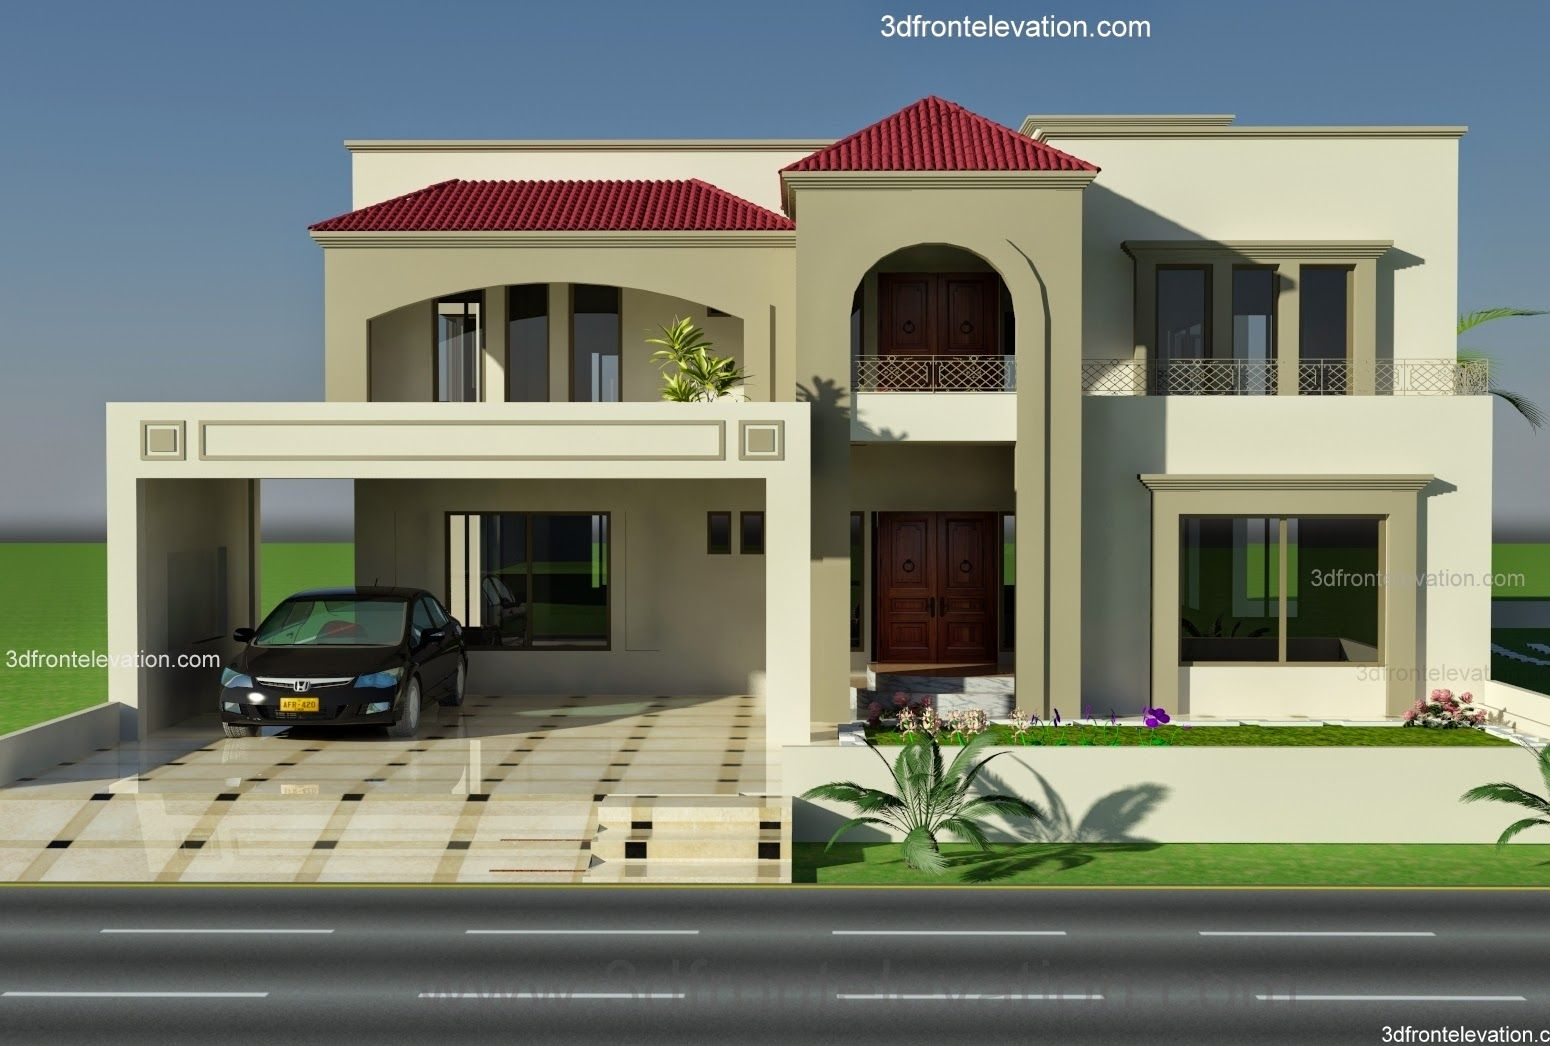 1 kanal plot house design europen style in bahria town ForHome Design Ideas In Pakistan